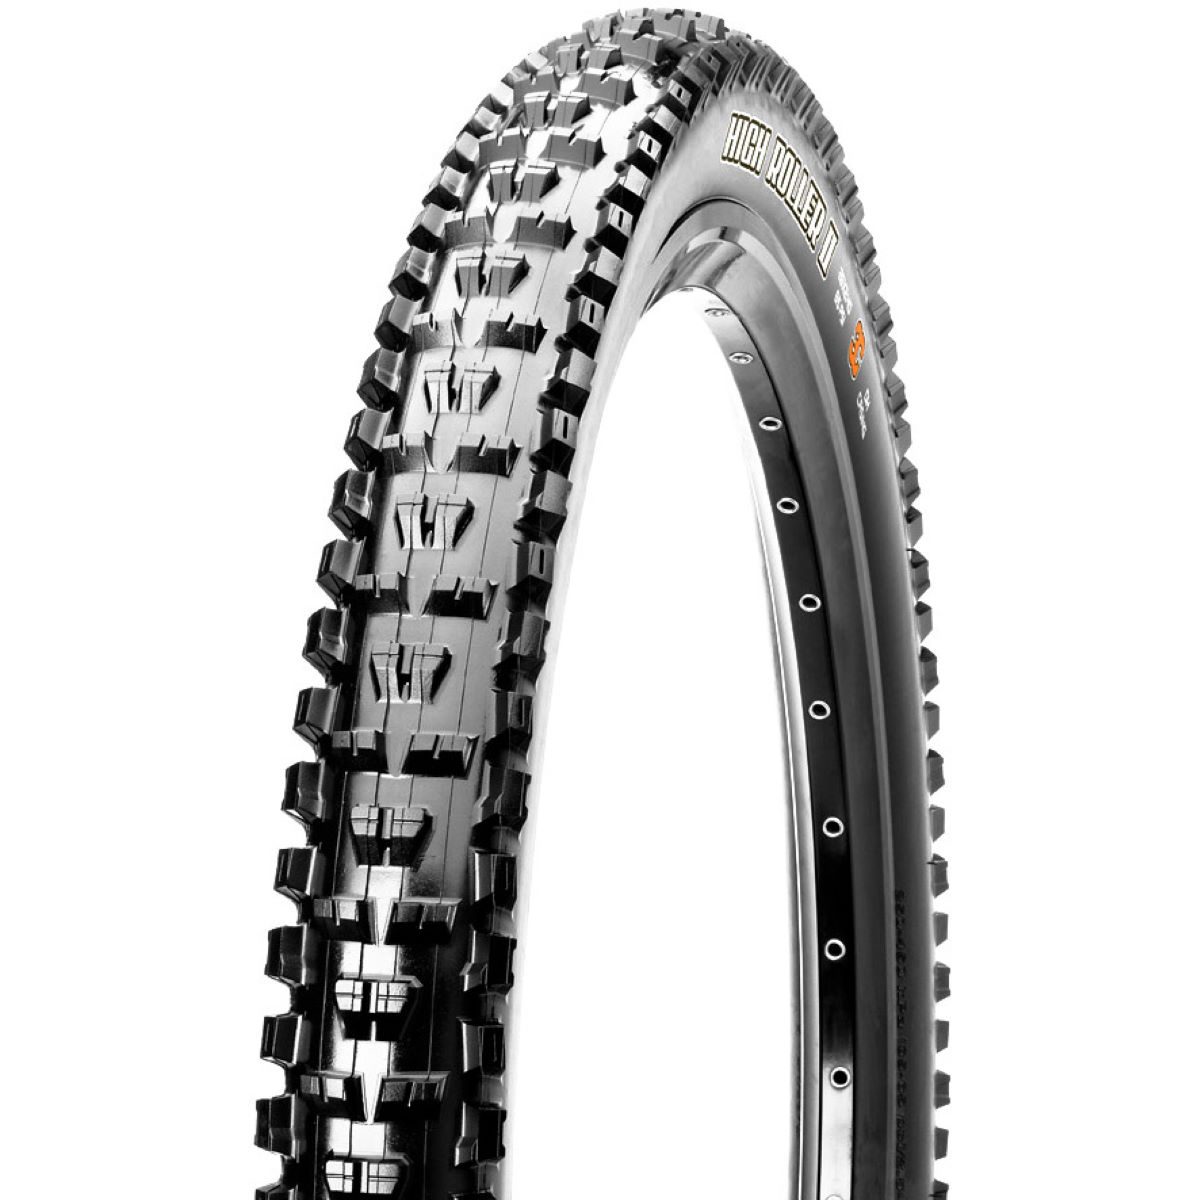 Pneu VTT Maxxis High Roller II Wired - 2.35' 27.5' Noir Pneus